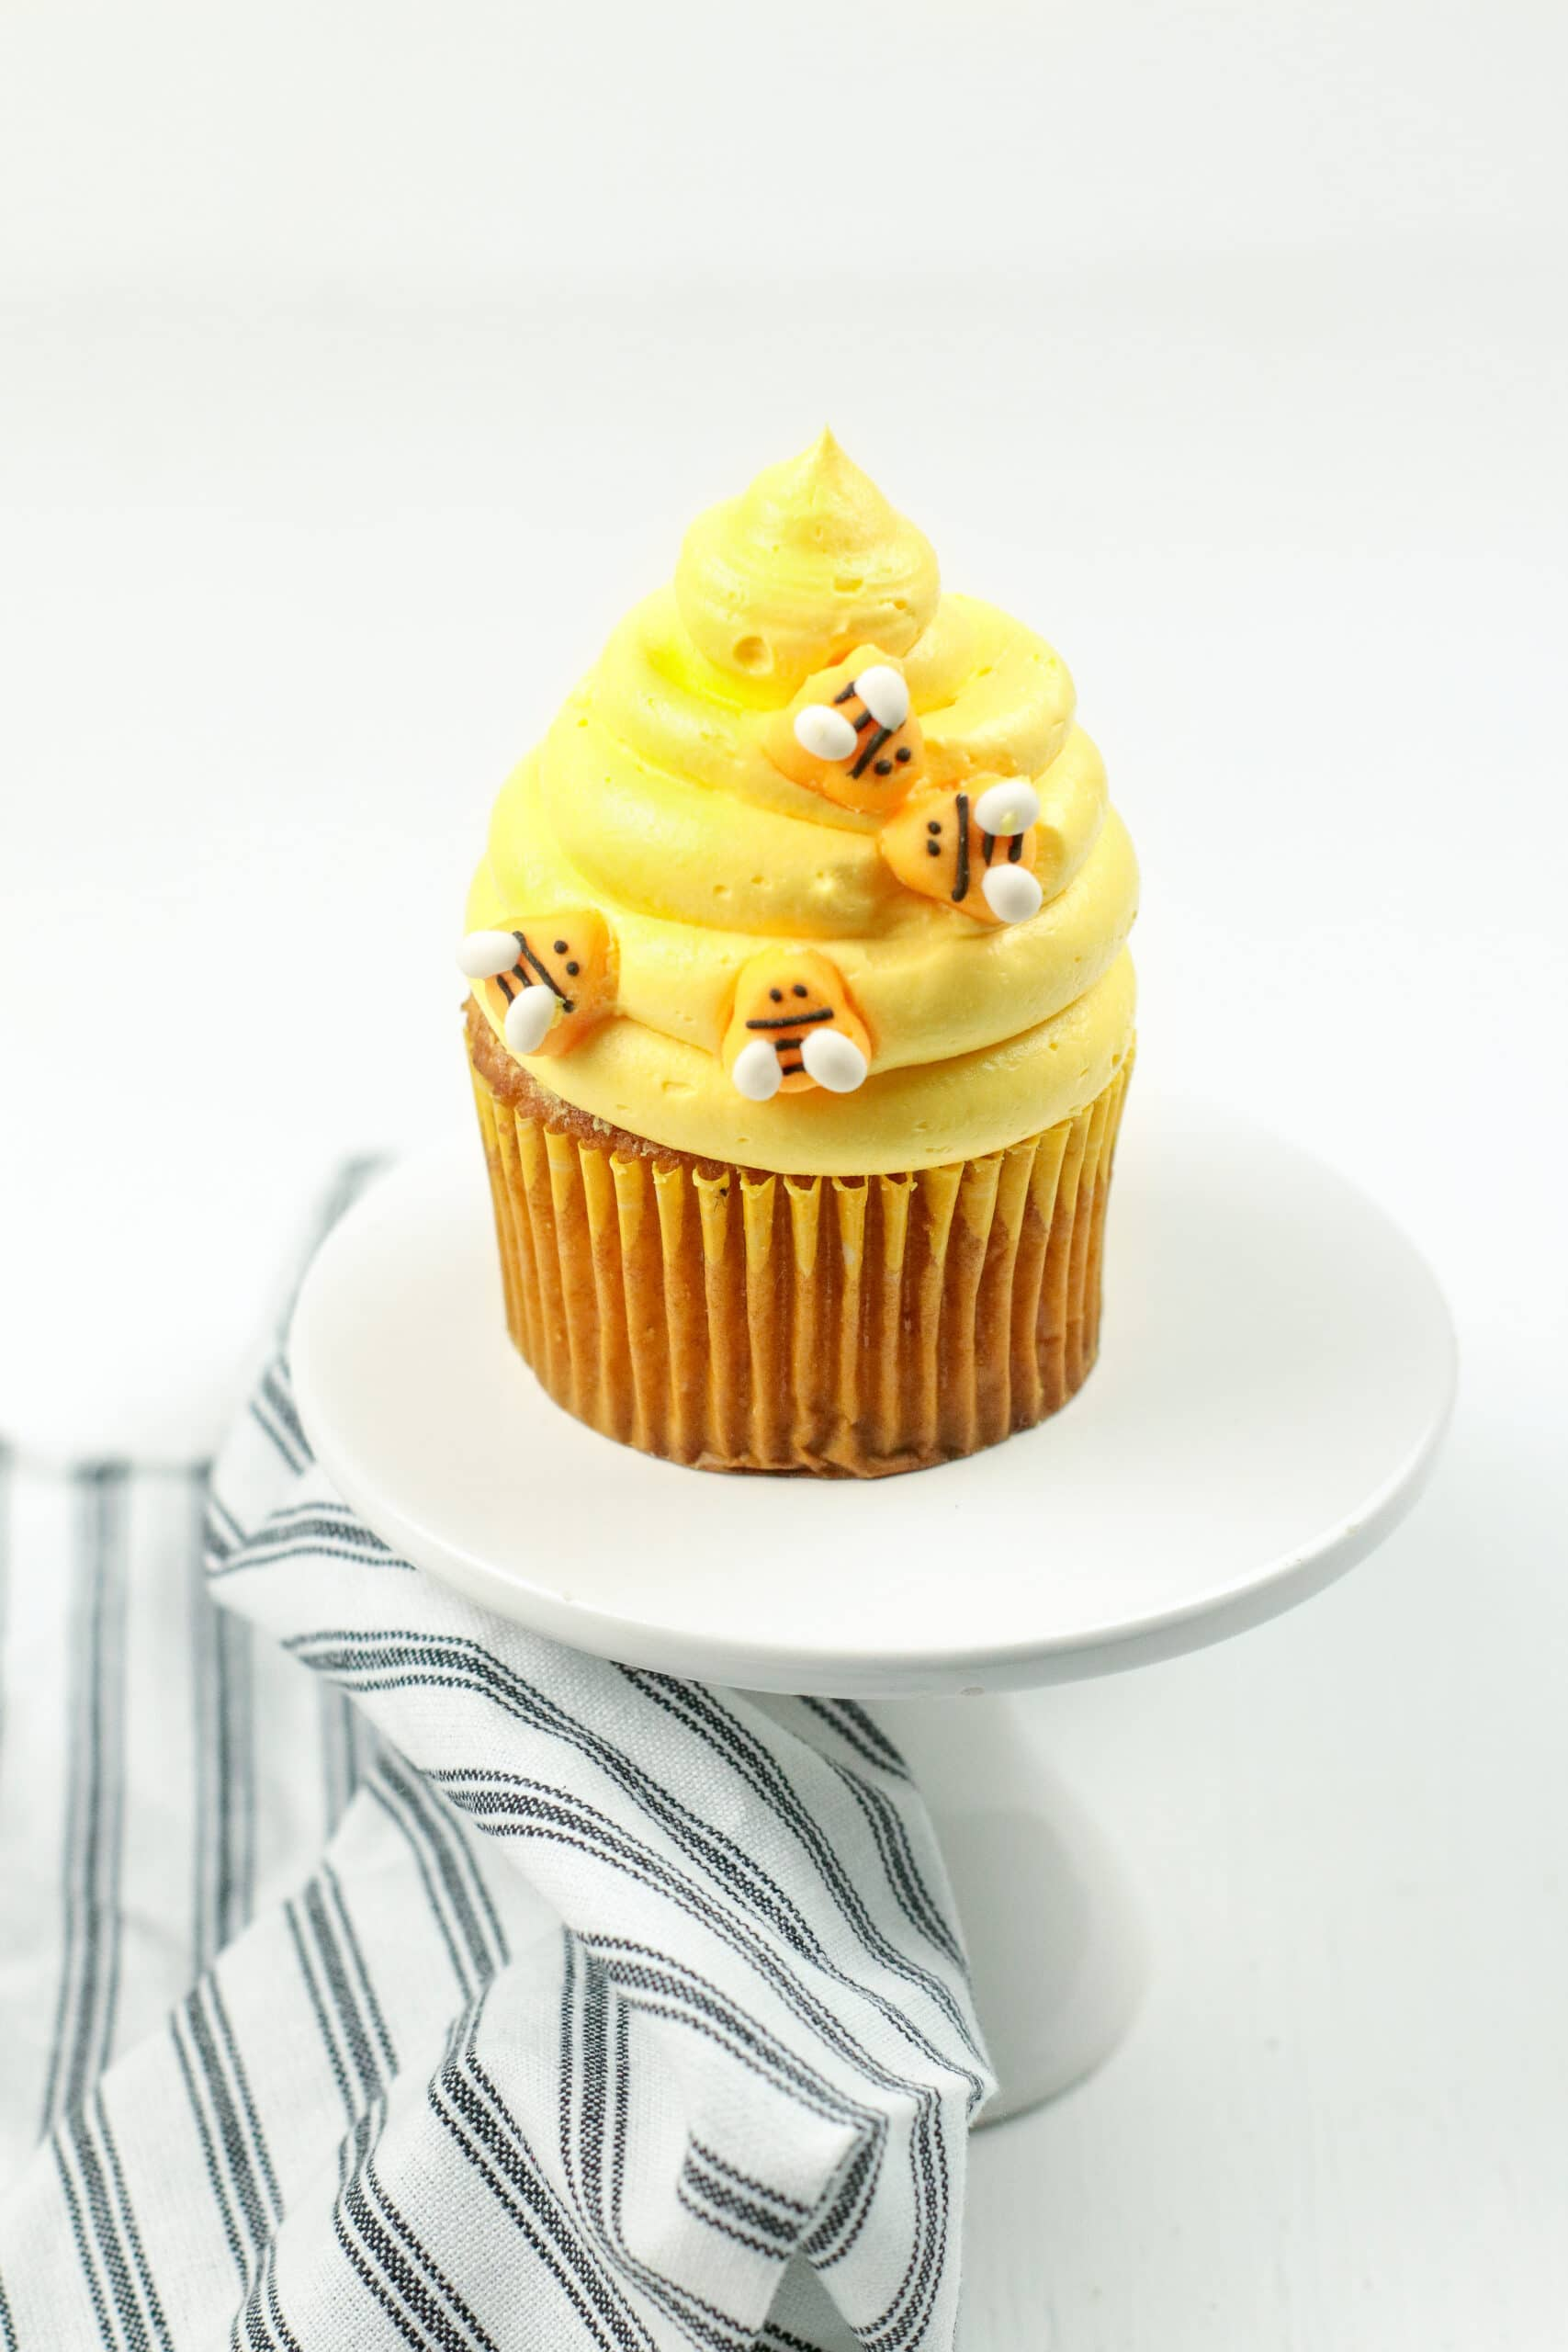 Bumblebee Honey Cupcakes with Honey Cream Cheese Frosting Single. These Bumblebee Honey Cupcakes with Honey Cream Cheese Frosting are insanely delicious. Made with a touch of honey and cinnamon, these bumblebee inspired cupcakes are almost too cute to eat.